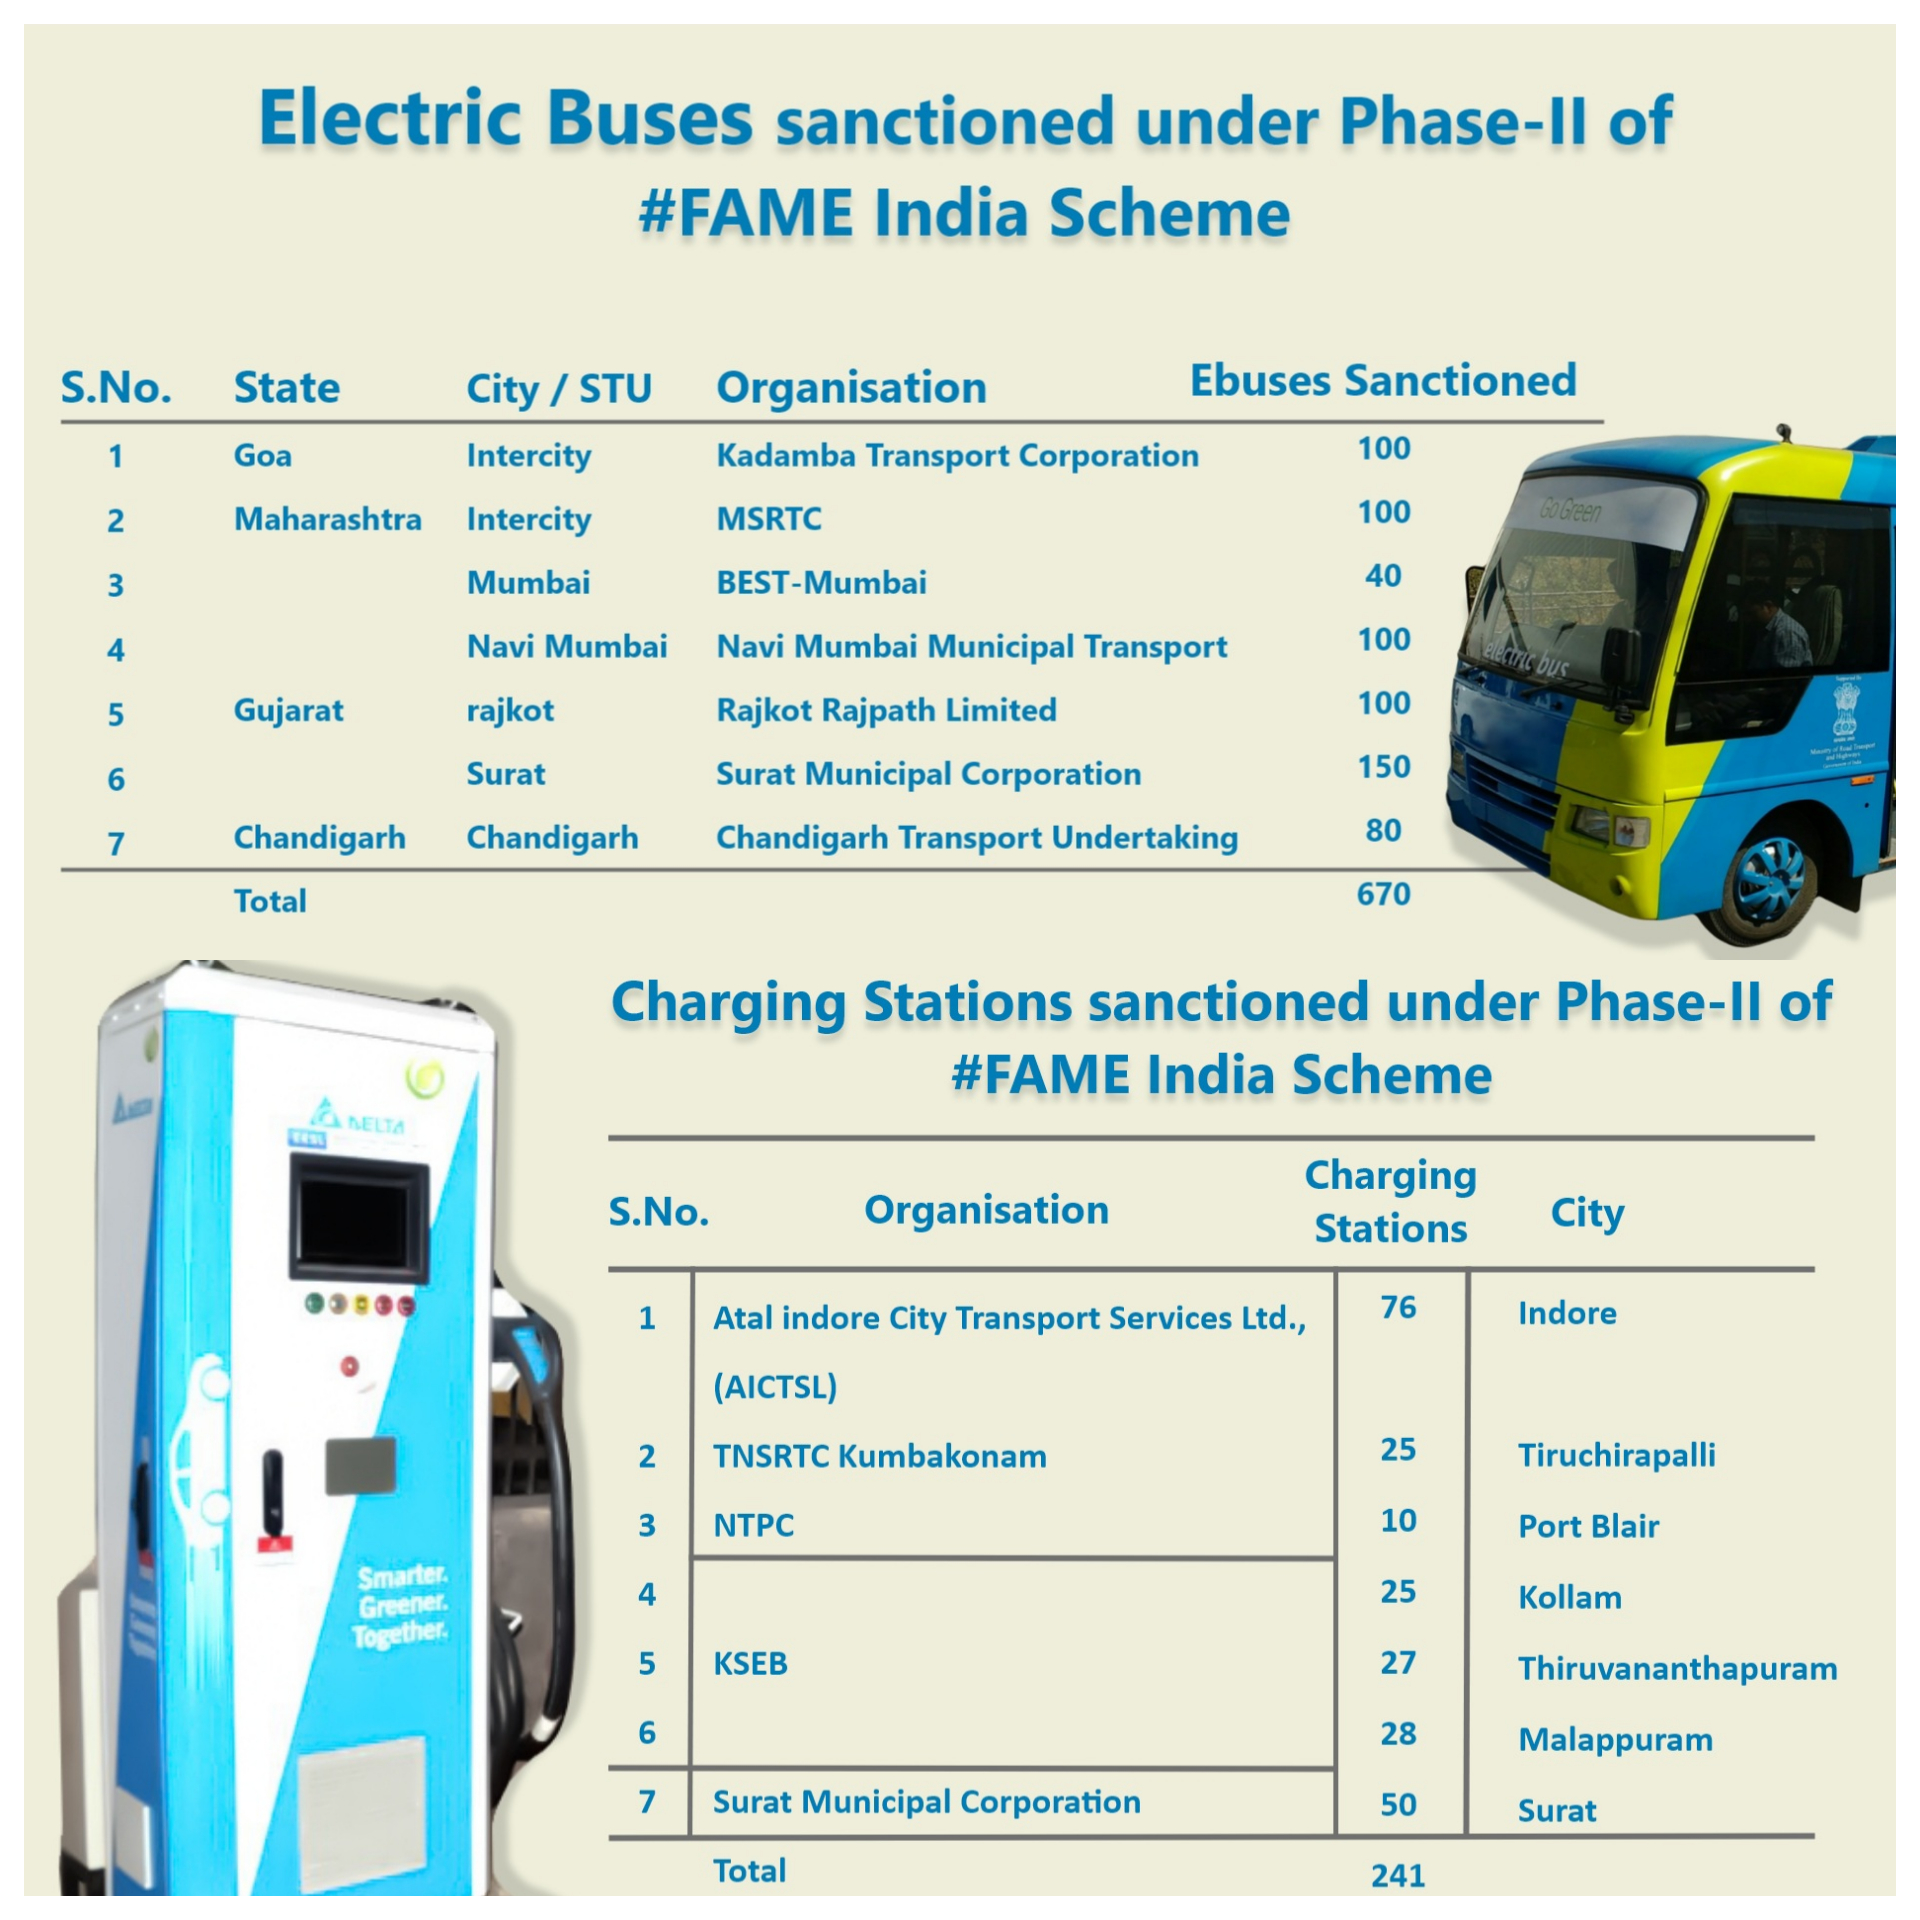 670 new electric buses and 241 charging stations sanctioned under FAME scheme